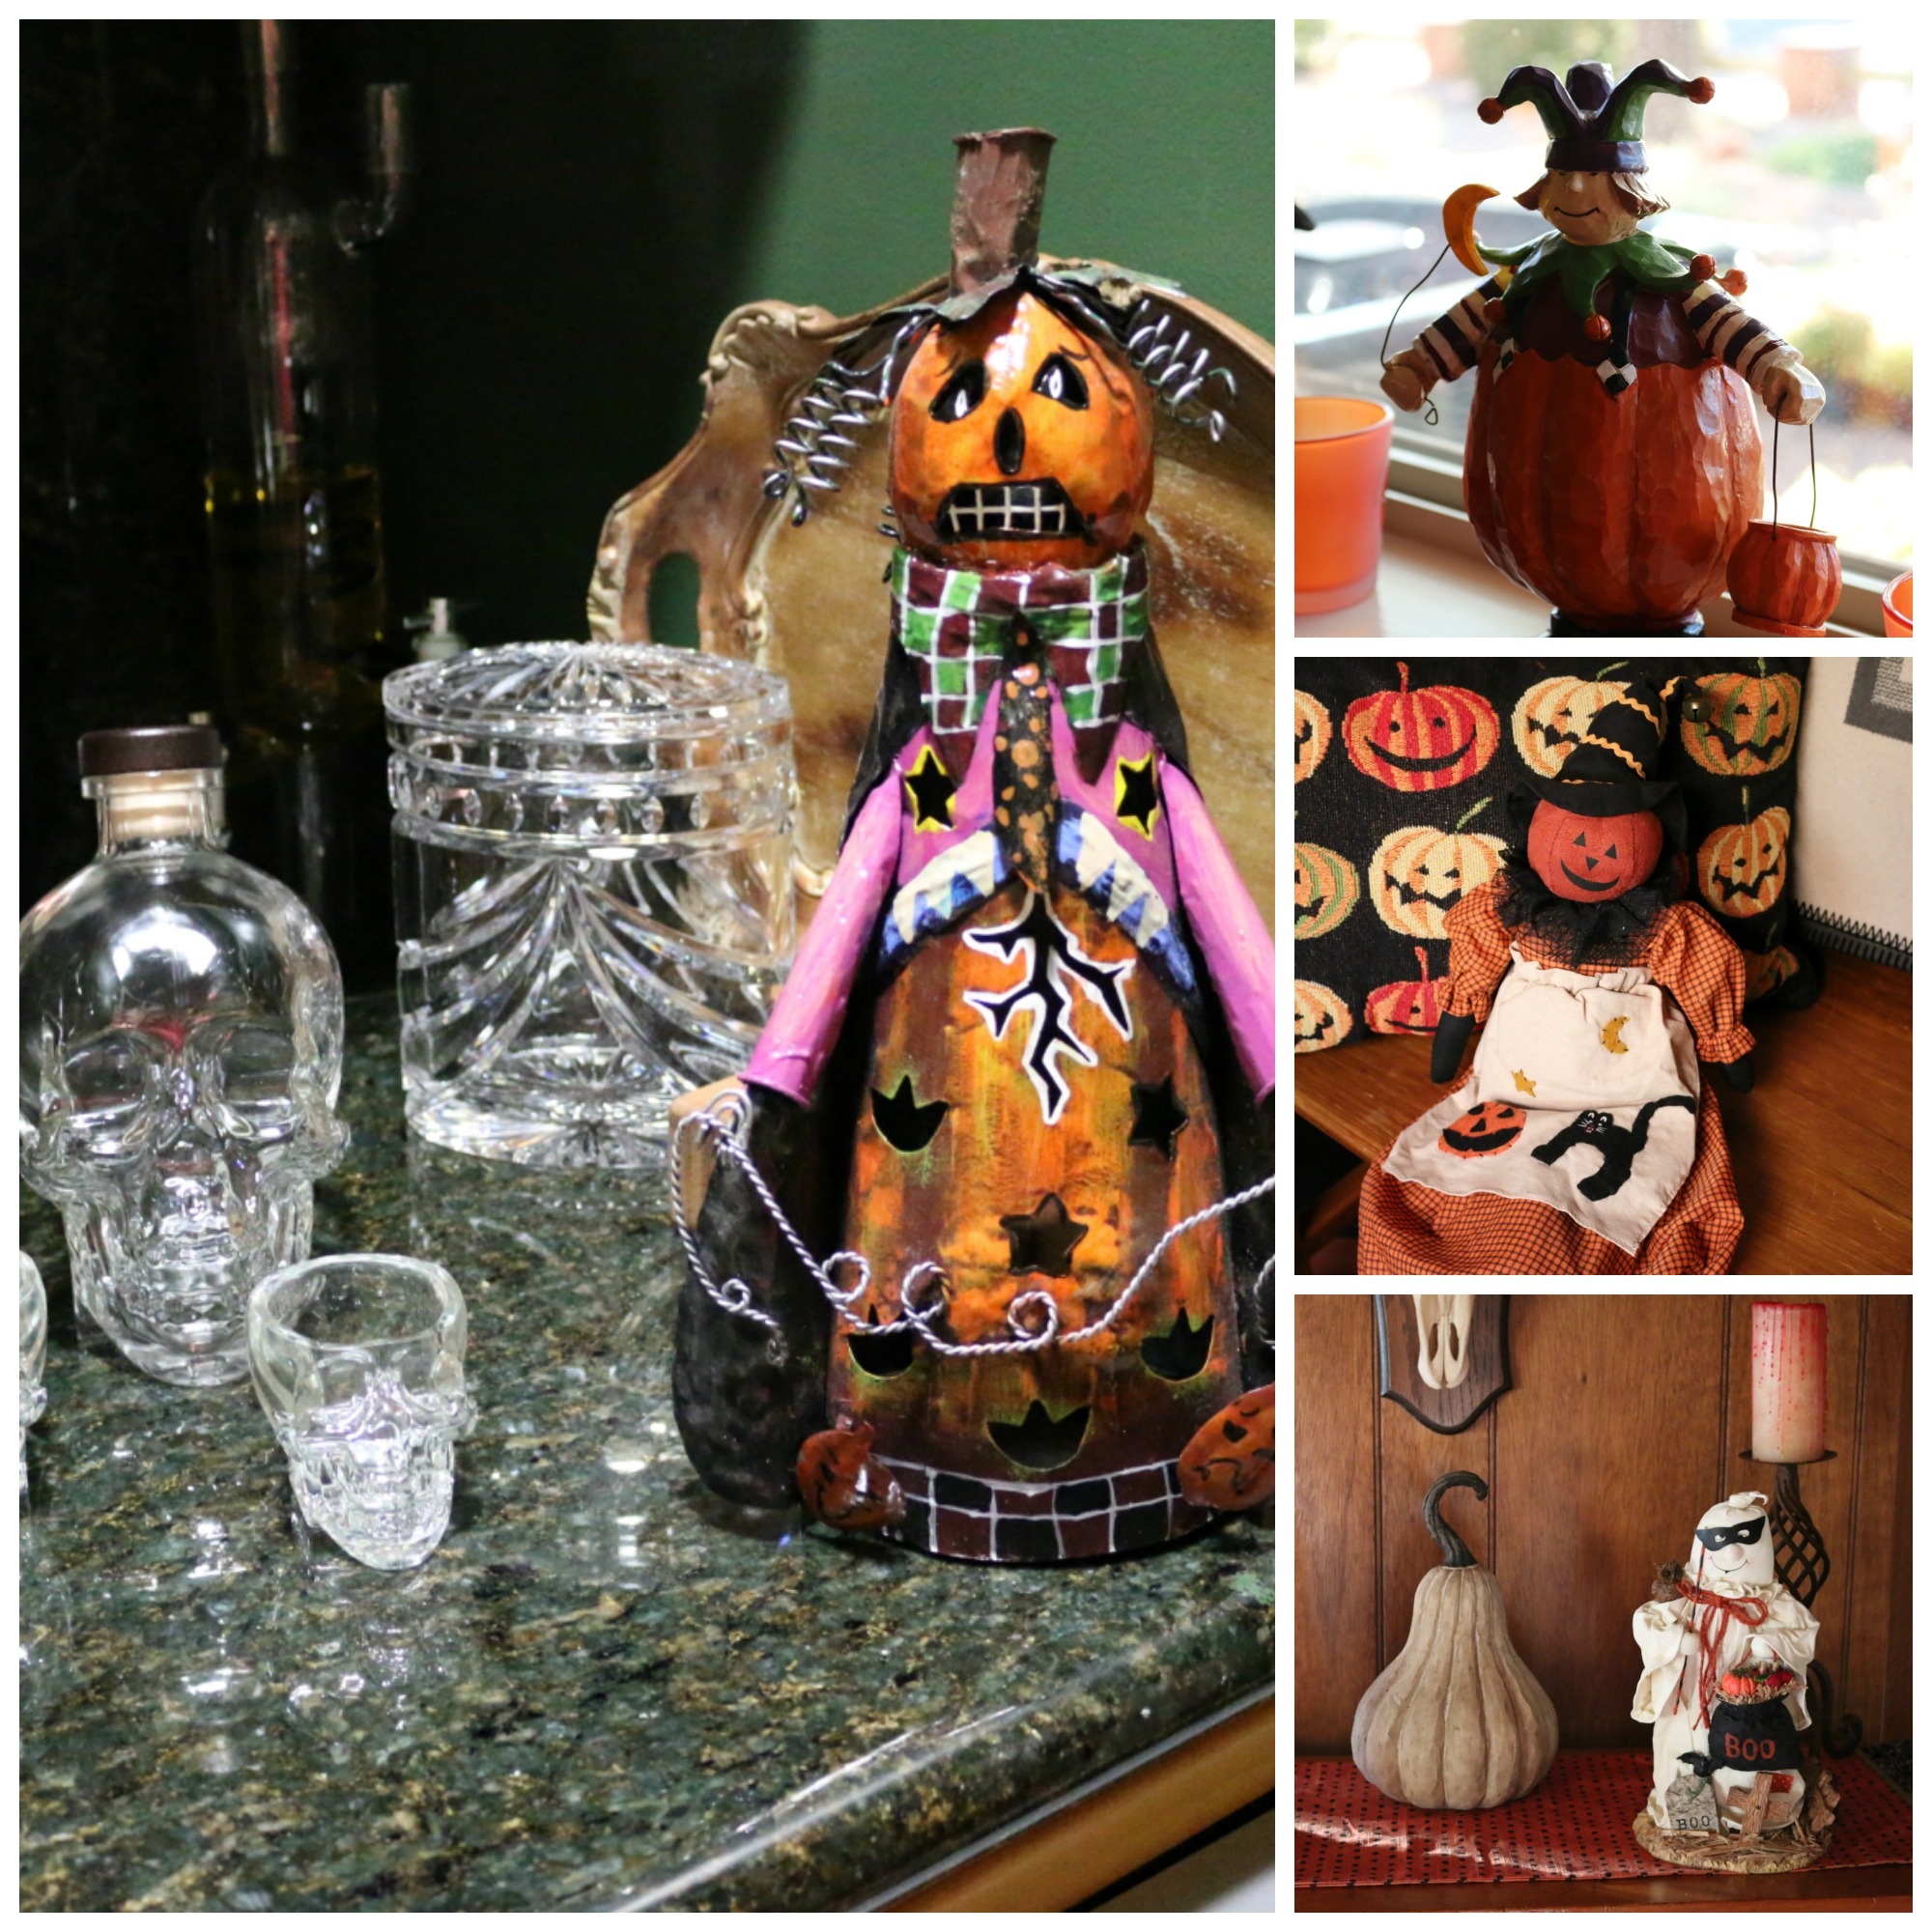 Casa Linda - My home in New Mexico - Halloween Decorations